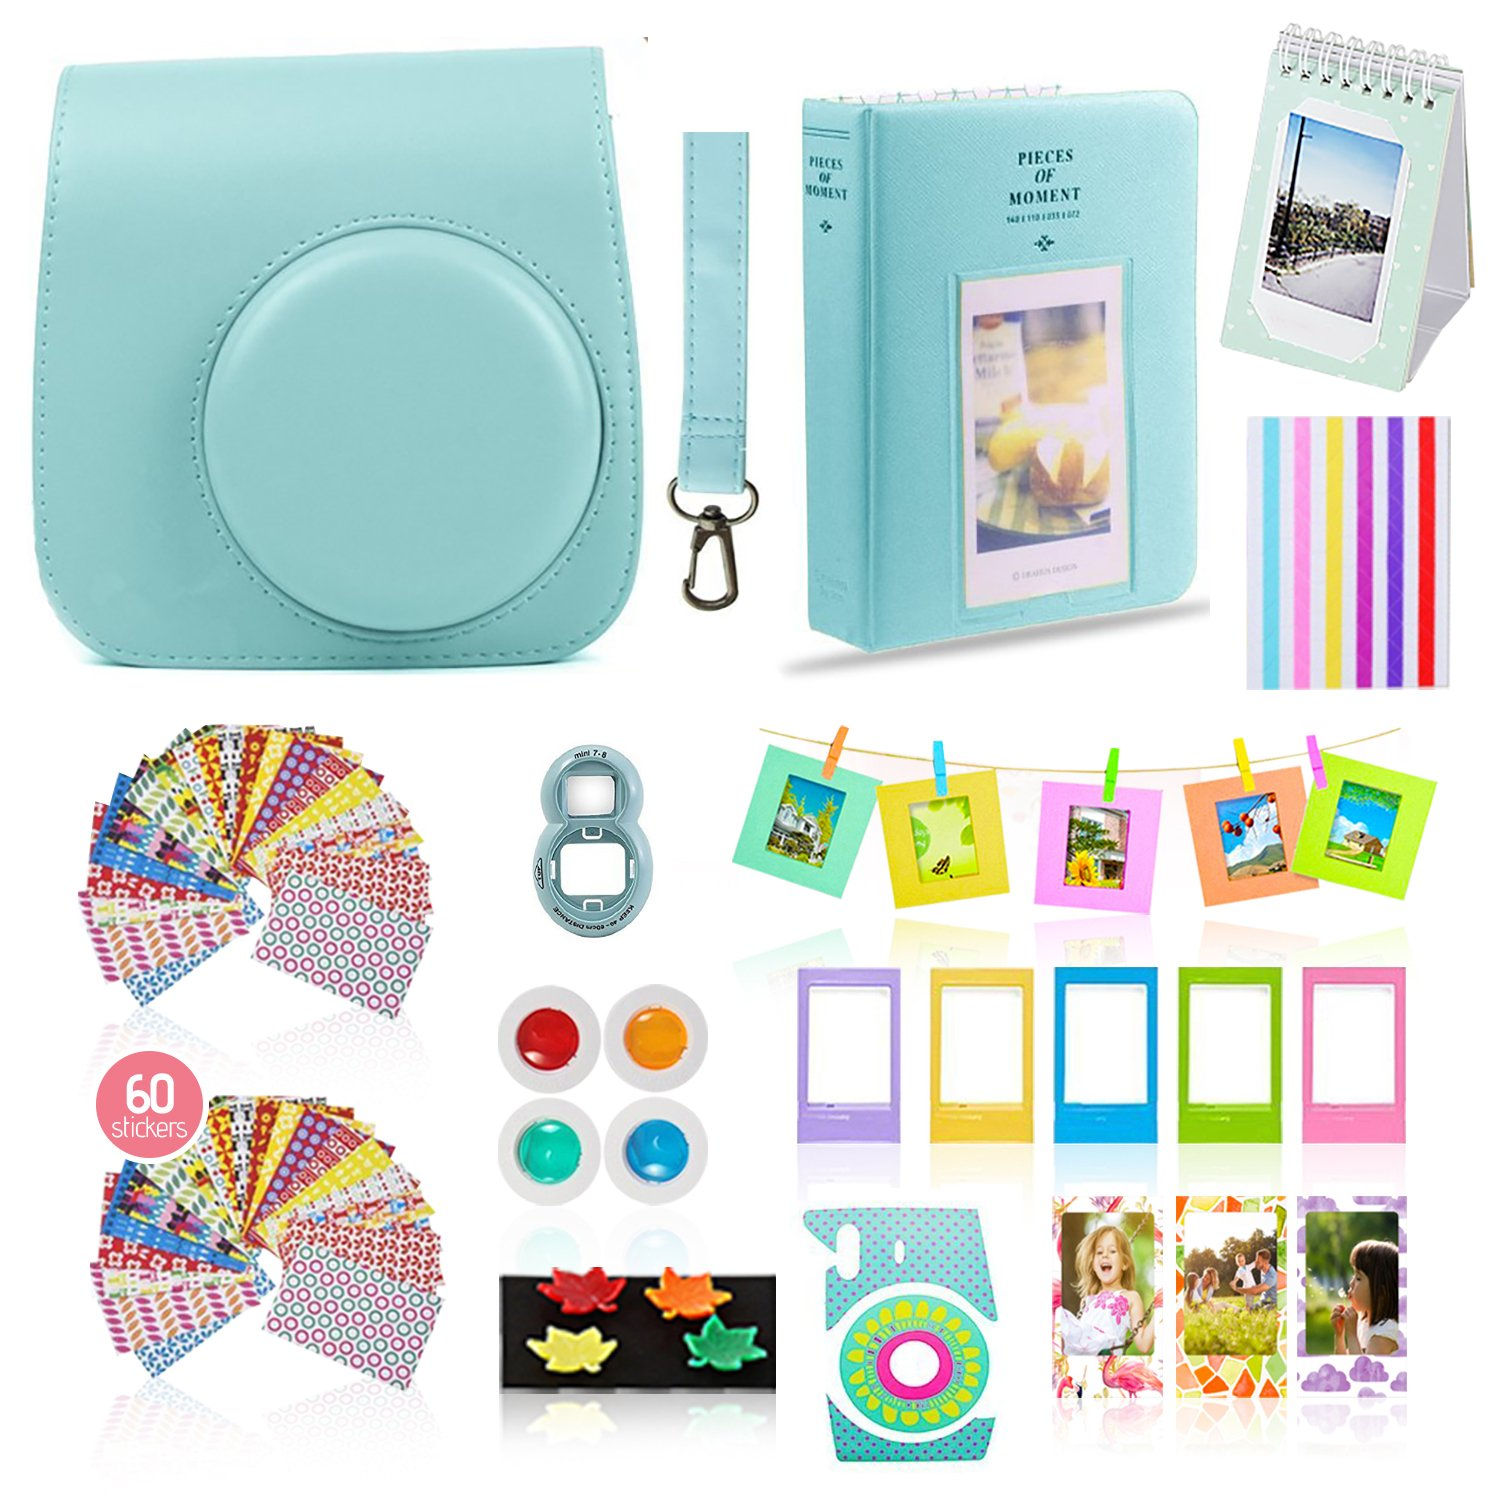 Fujifilm Instax Mini 9 Camera Accessories Bundle, ICE BLUE Instax Mini Case, 14 PC Kit Includes: 2 Photo Albums, Color Filter, Selfie lens, Magnets + Hanging + Creative Frames, 60 stickers, Gift Set by Shutter